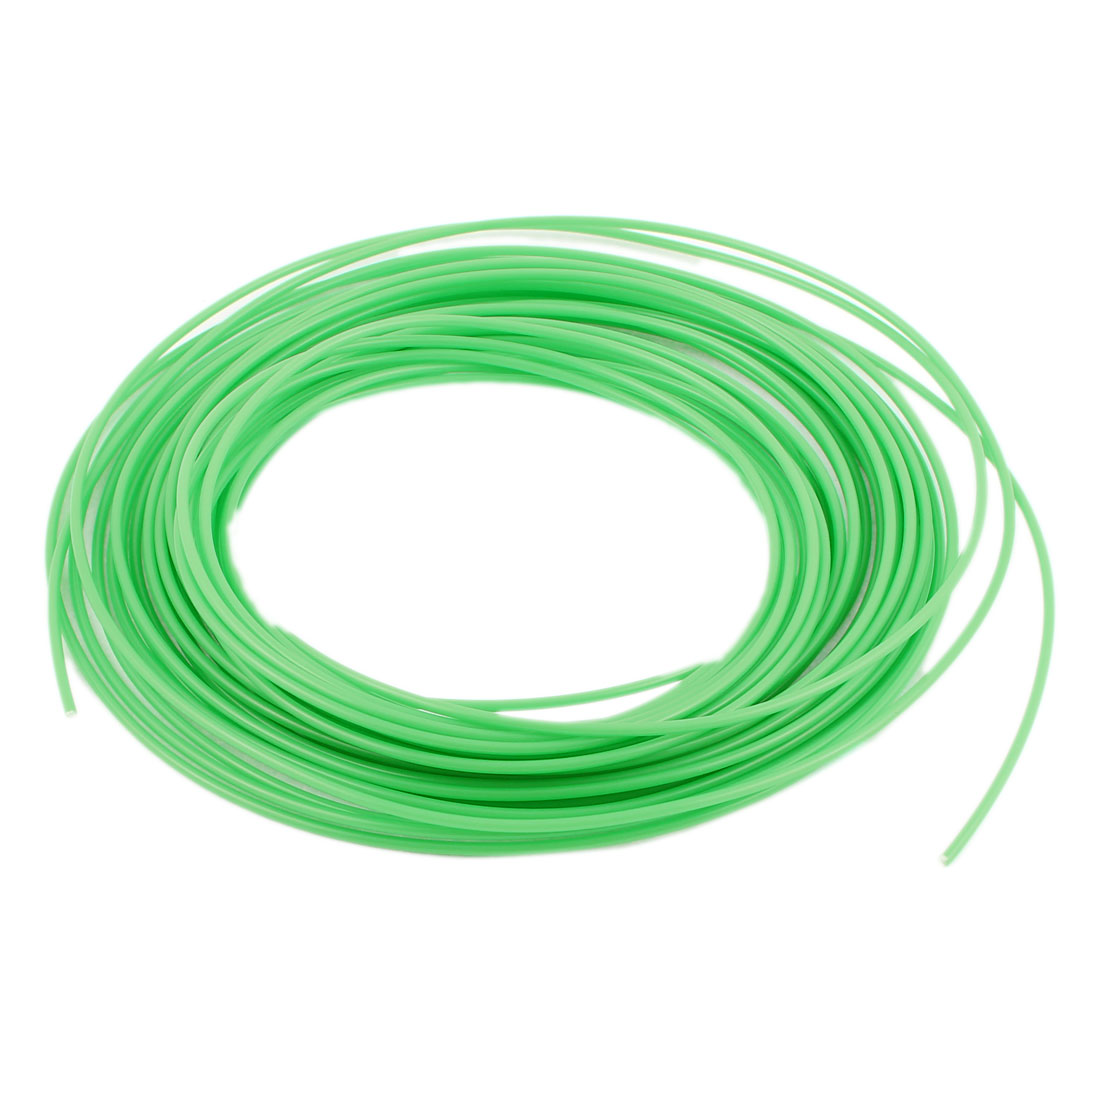 10m 3D Printer Pen Painting Filament Refills ABS Printing Material Green